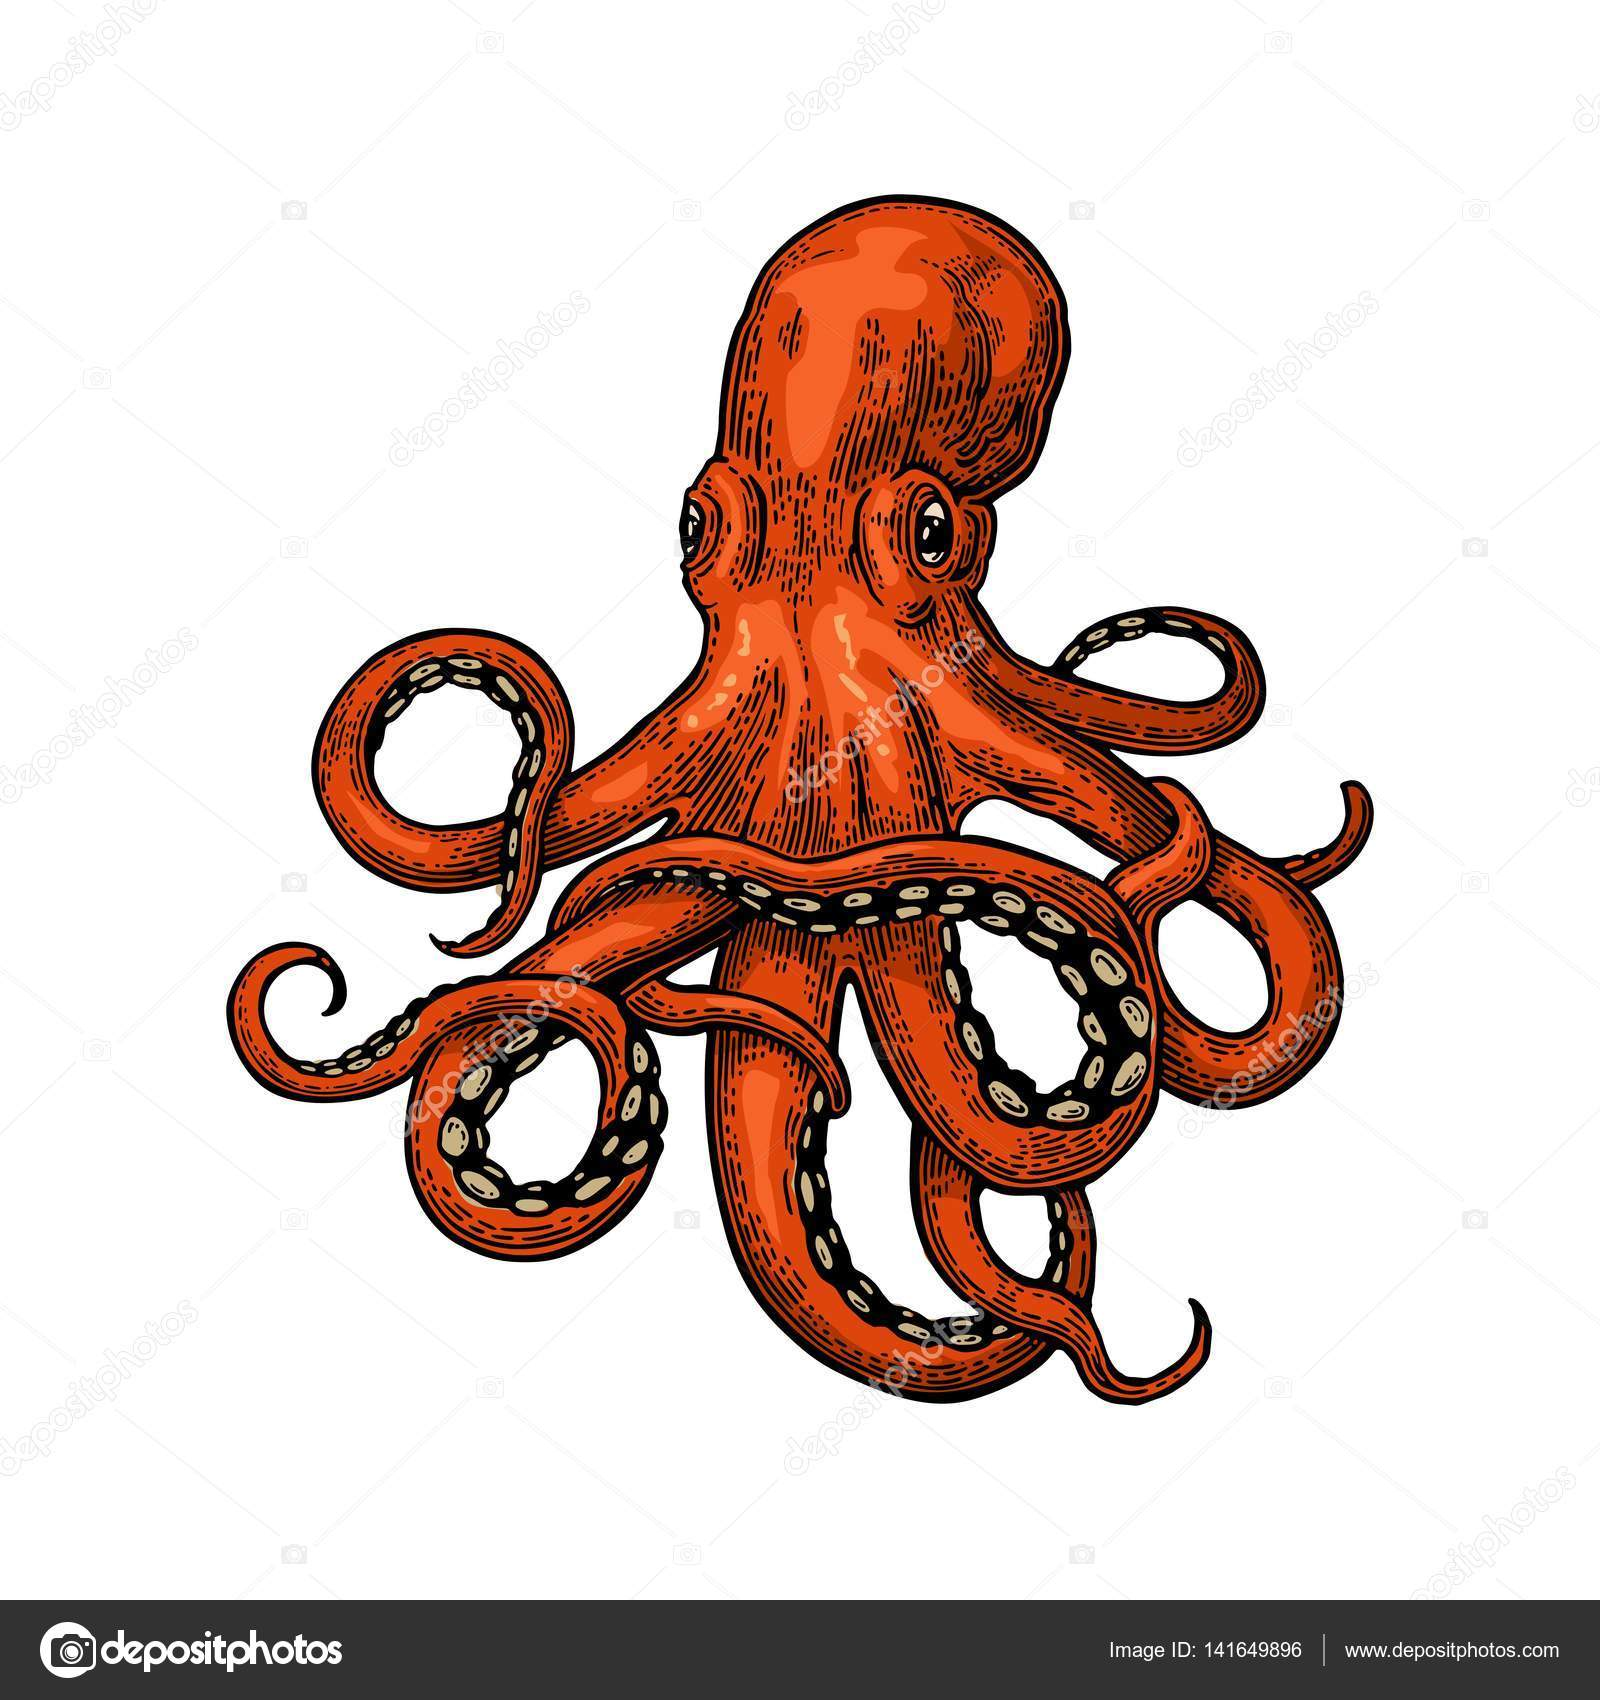 Sea Monster clipart orange #141649896 Monster #141649896 Stock DenisPotysiev